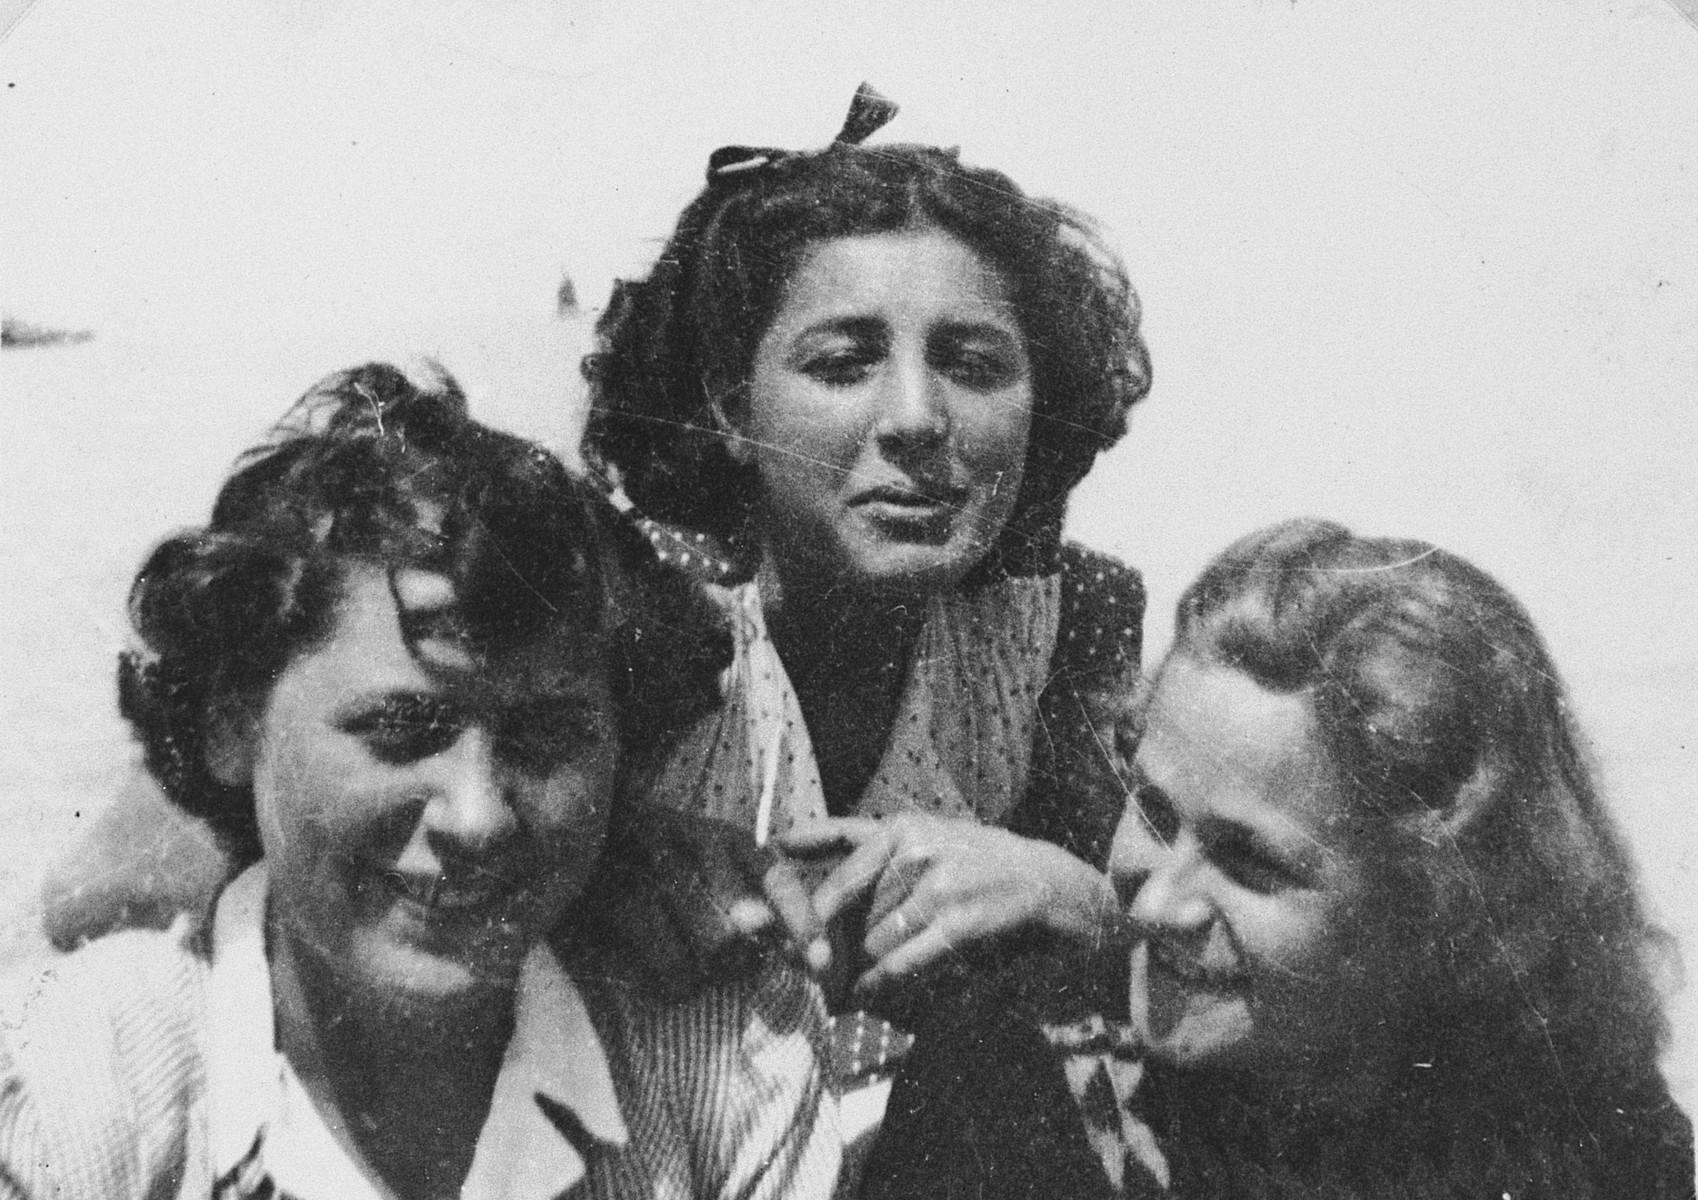 Three young women at the Migdalor hachshara, a maritime Zionist collective in Fano, Italy.  Pictured is Karola Slomovits (left) with two Italian friends, Narda and Teresa Picinetti.